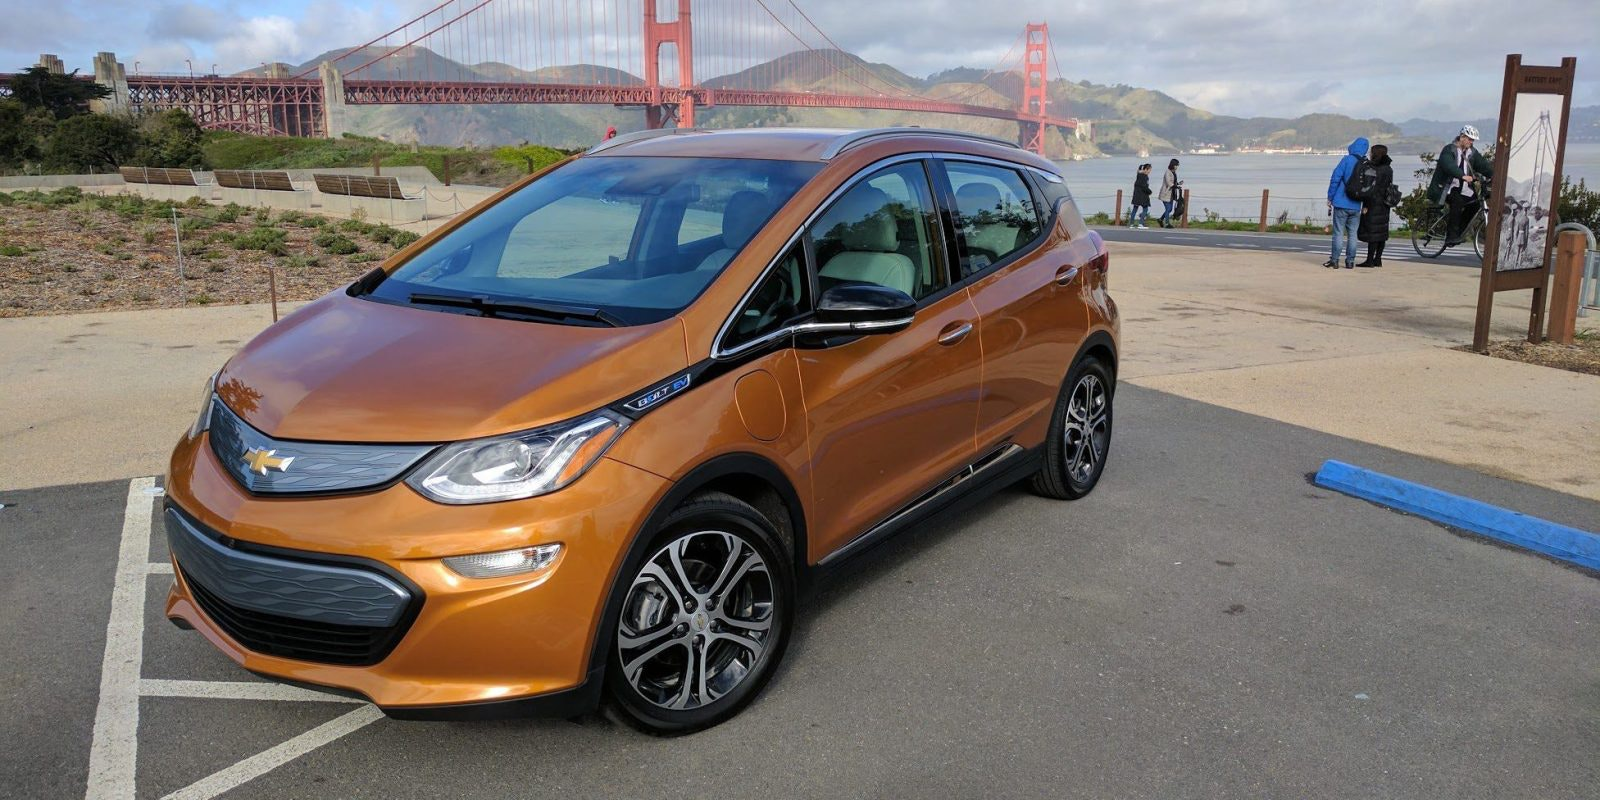 2017 Bolt EV: All-Electric Vehicle | Chevrolet